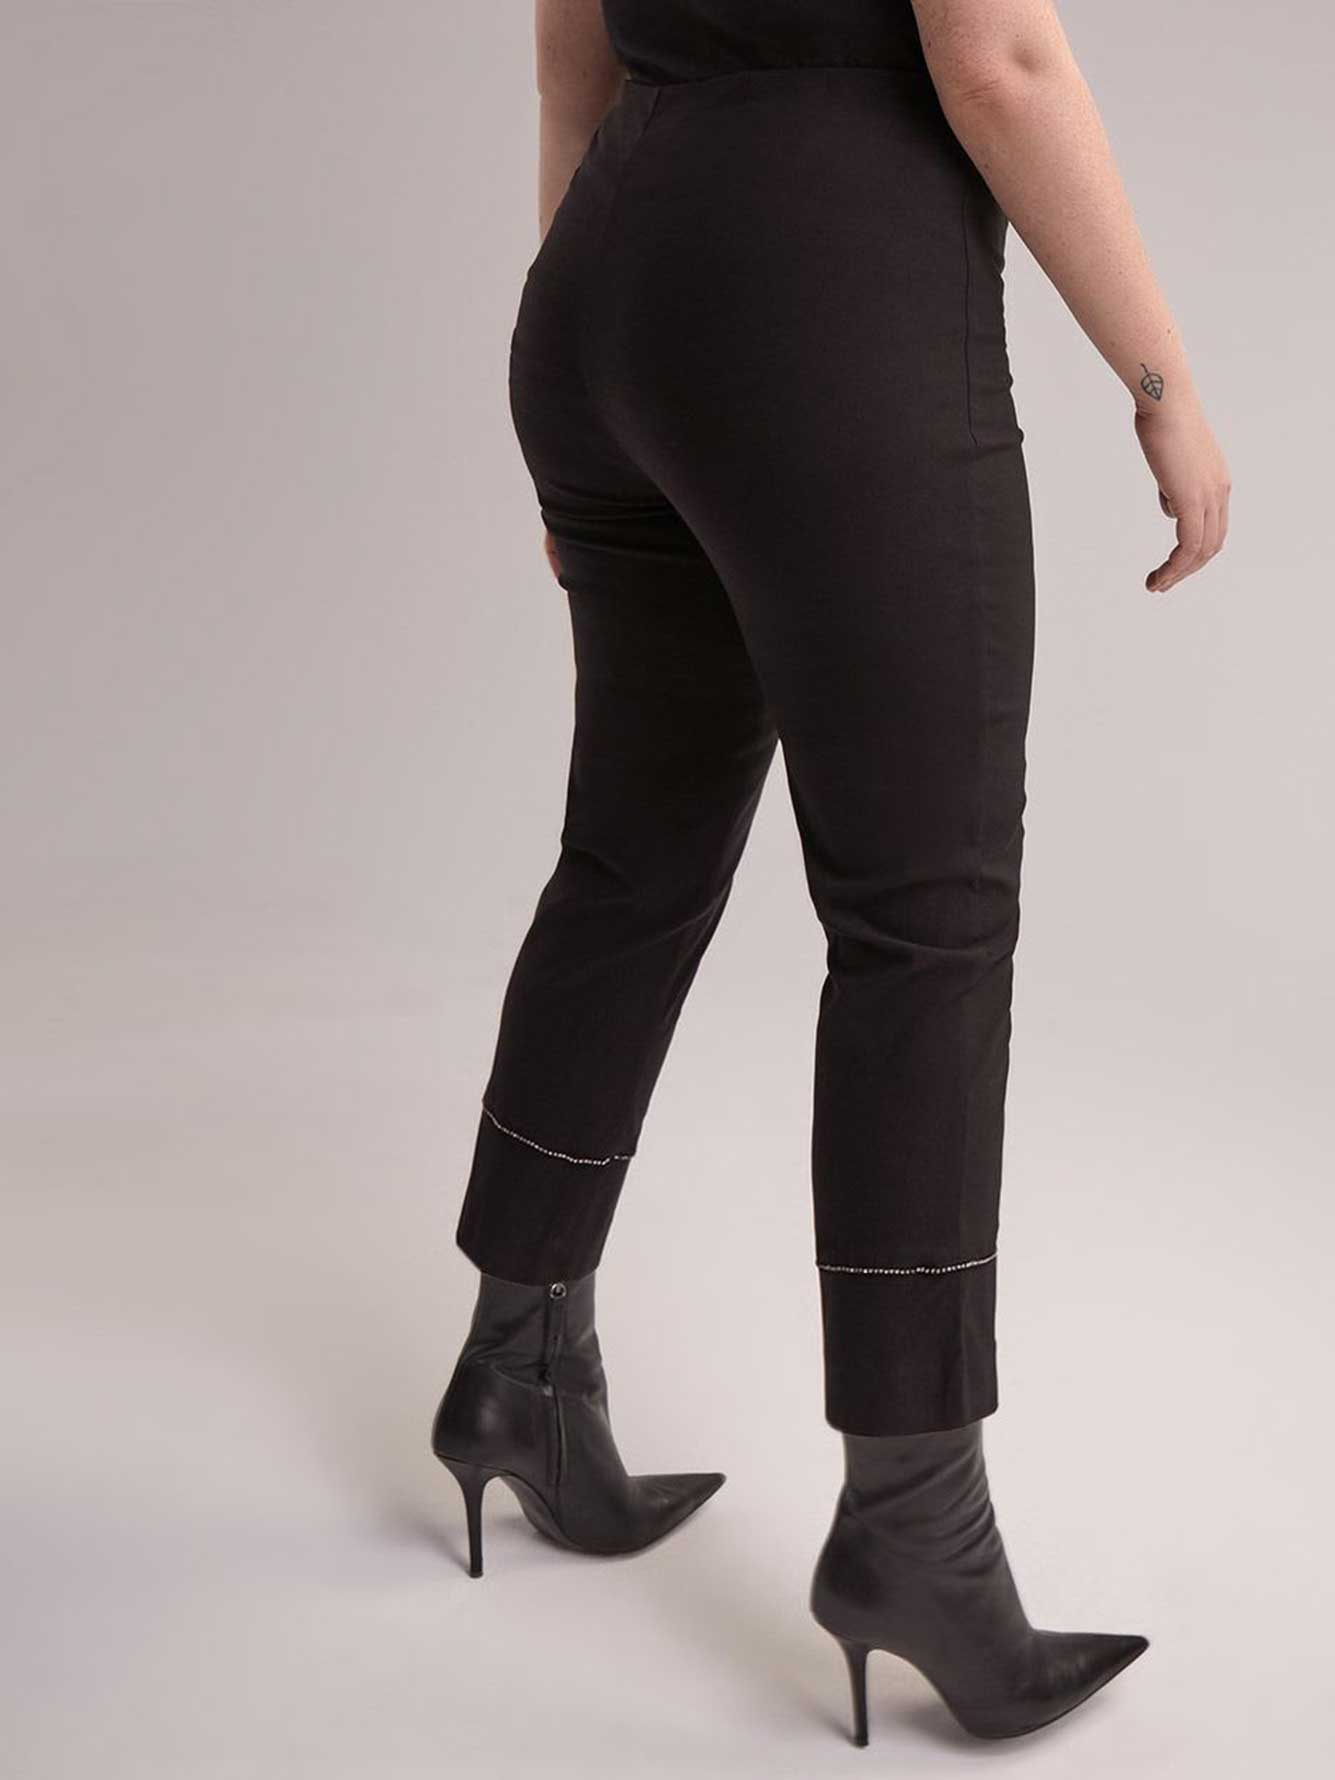 Slim Leg Ankle Pants with Diamond Details at the Cuff - Michel Studio